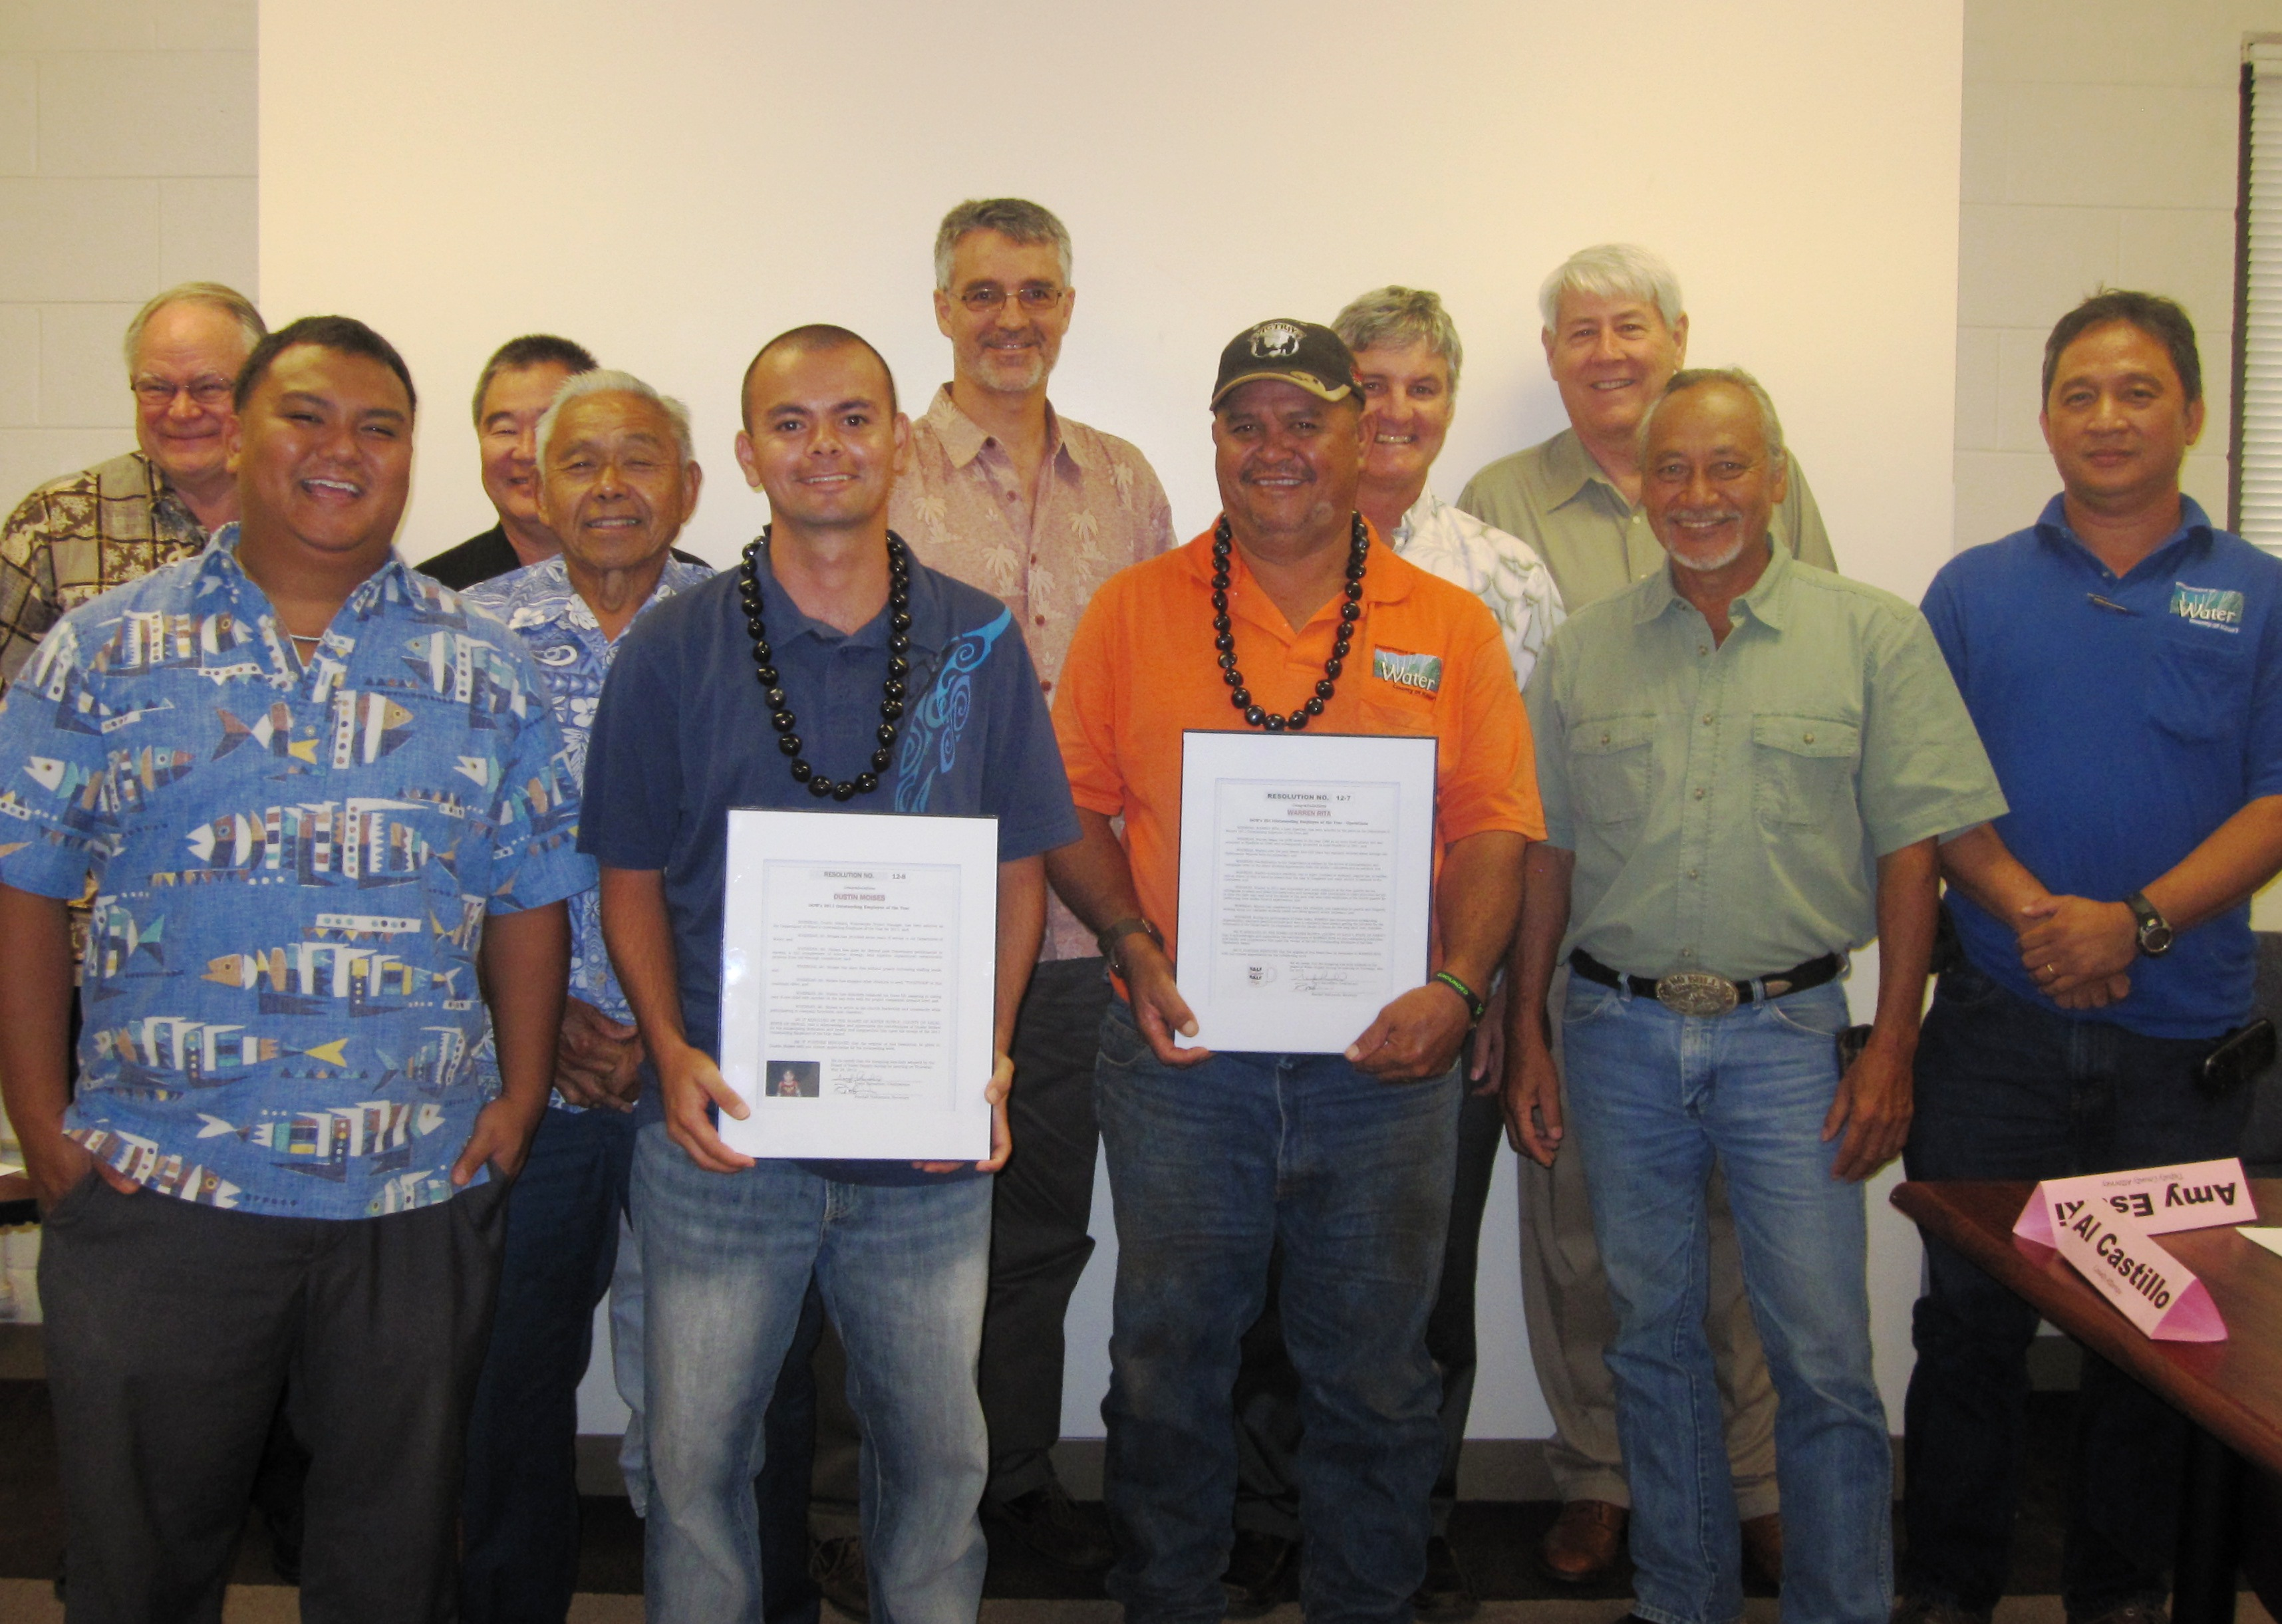 Dustin Moises and Warren Rita were recognized as the Department of Water's Outstanding Employees of the Year during the Board of Water Supply's monthly meeting. From left: Raymond McCormick; Michael Dahilig; Randall Nishimura; Roy Oyama; Moises; Lawrence Dill; Rita; William Eddy; David Craddick; Darryl Kaneshiro; and Val Reyna.